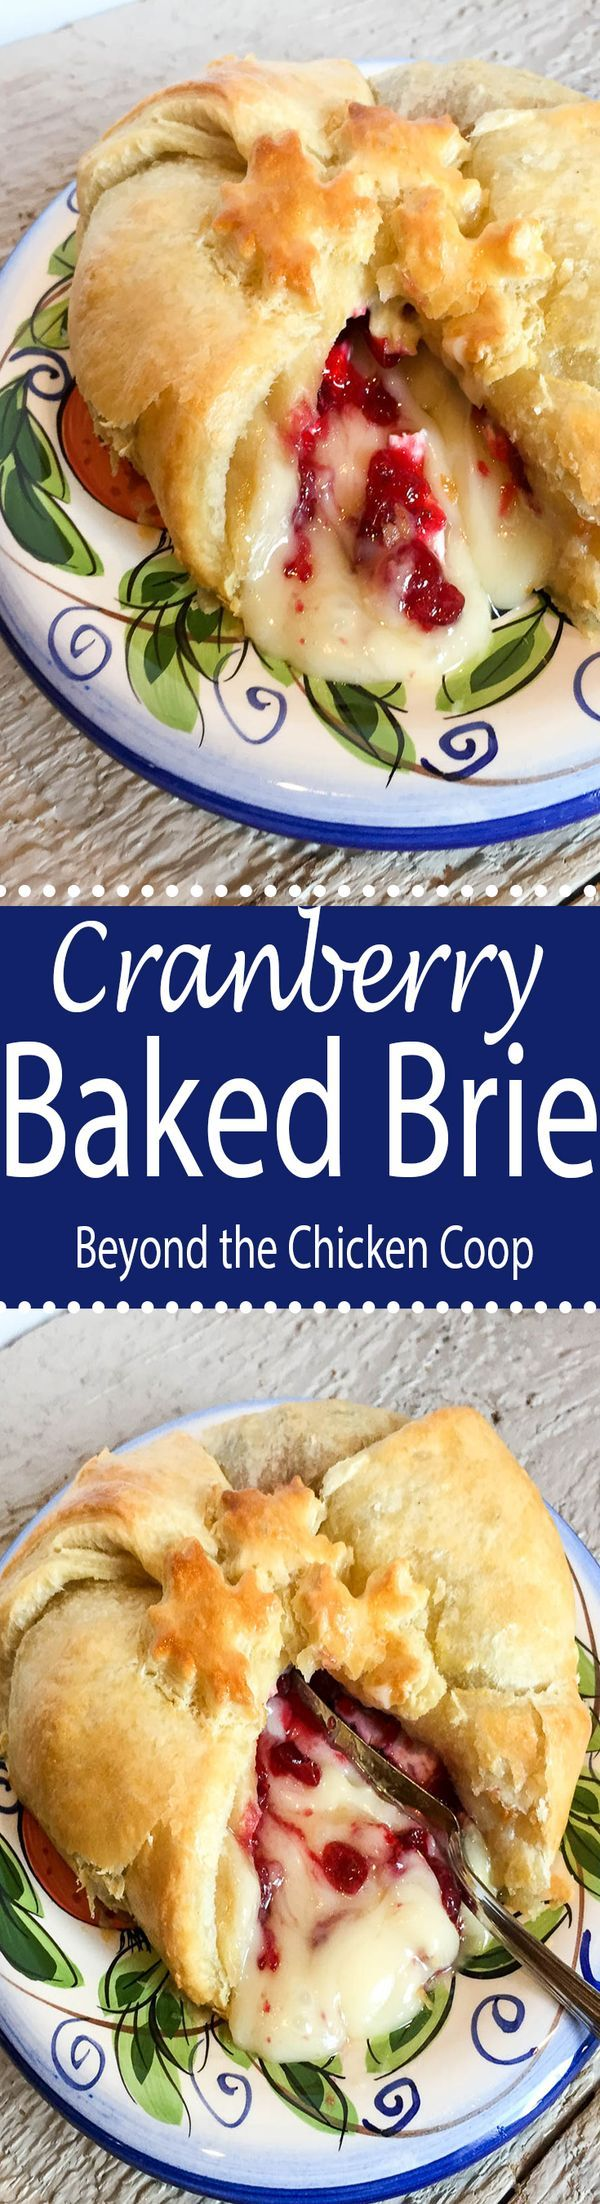 Cranberry Baked Brie Recipe - a delicious party appetizer!